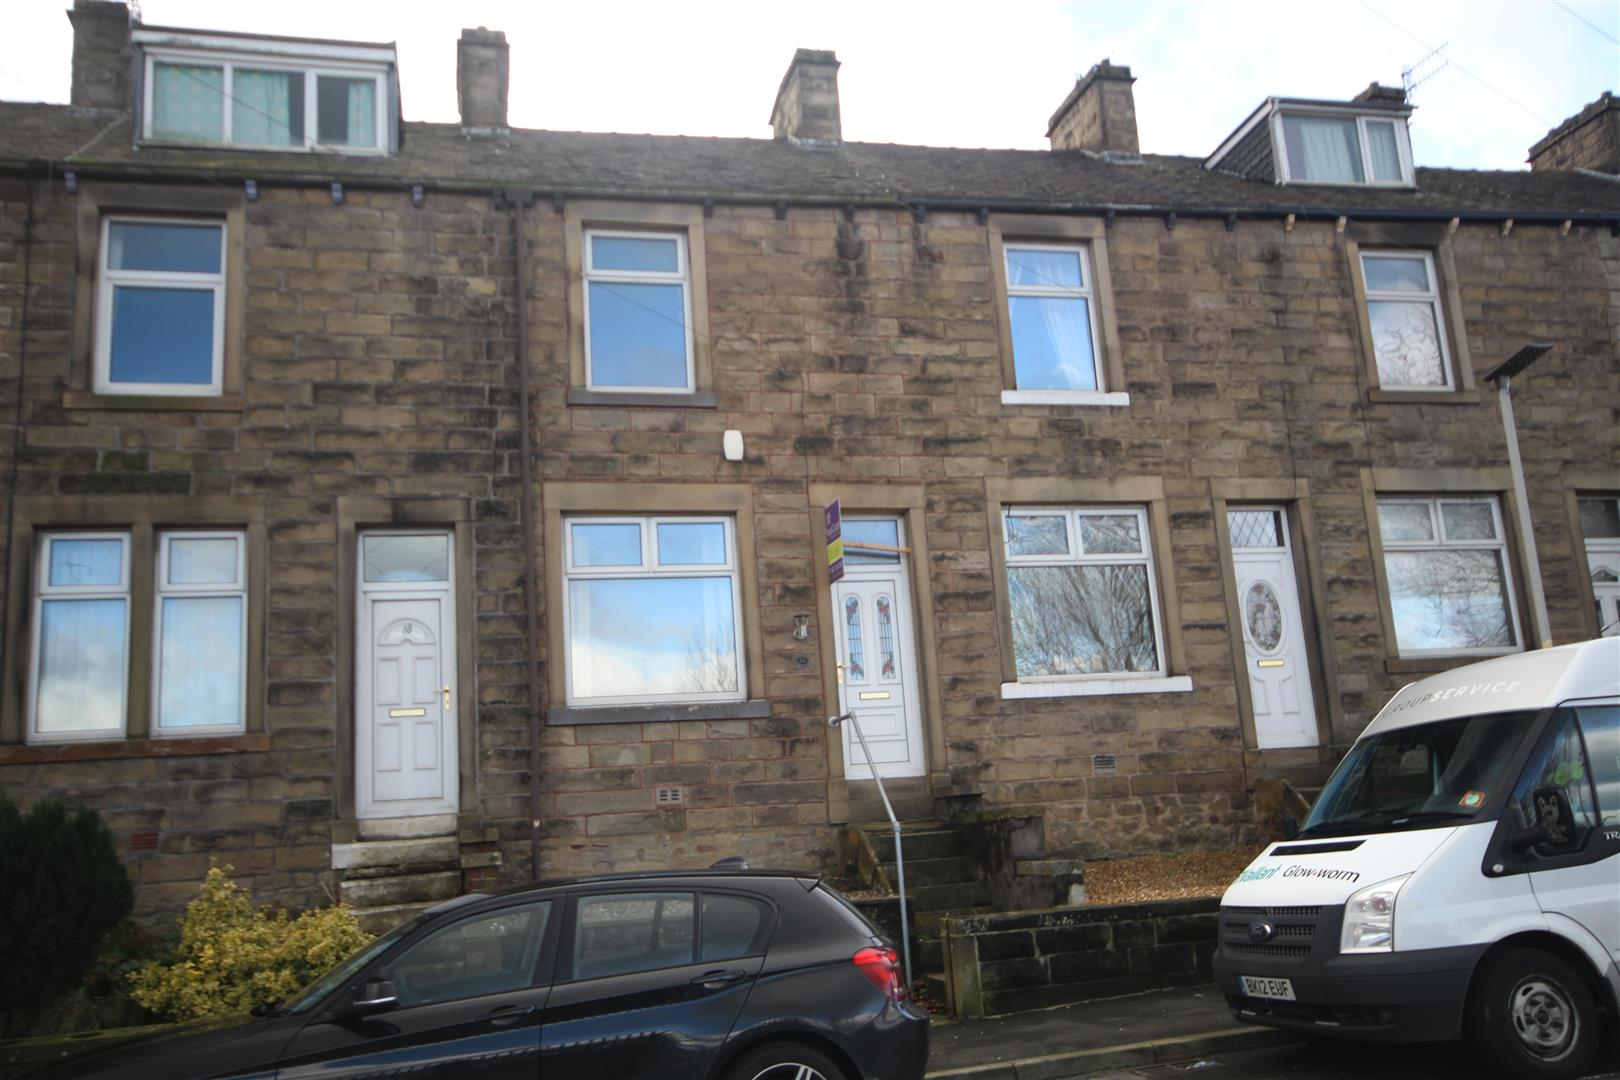 3 bedroom mid terrace house To Let in Barnoldswick - 2016-02-03 13.35.44-1.jpg